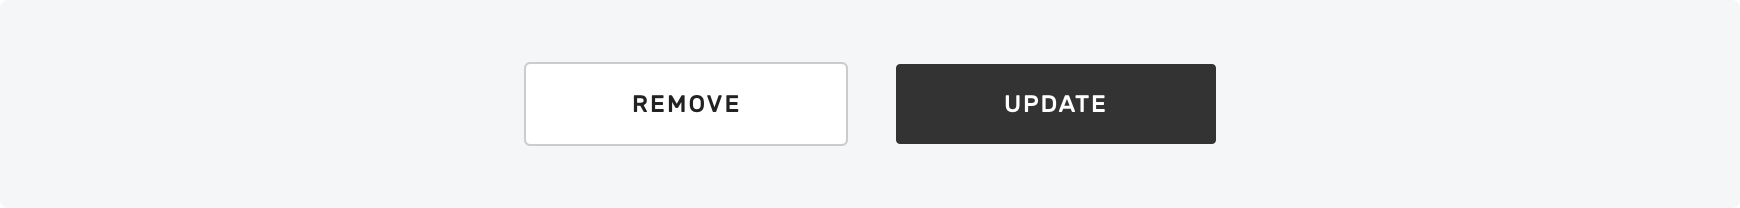 Button / Fixed size example